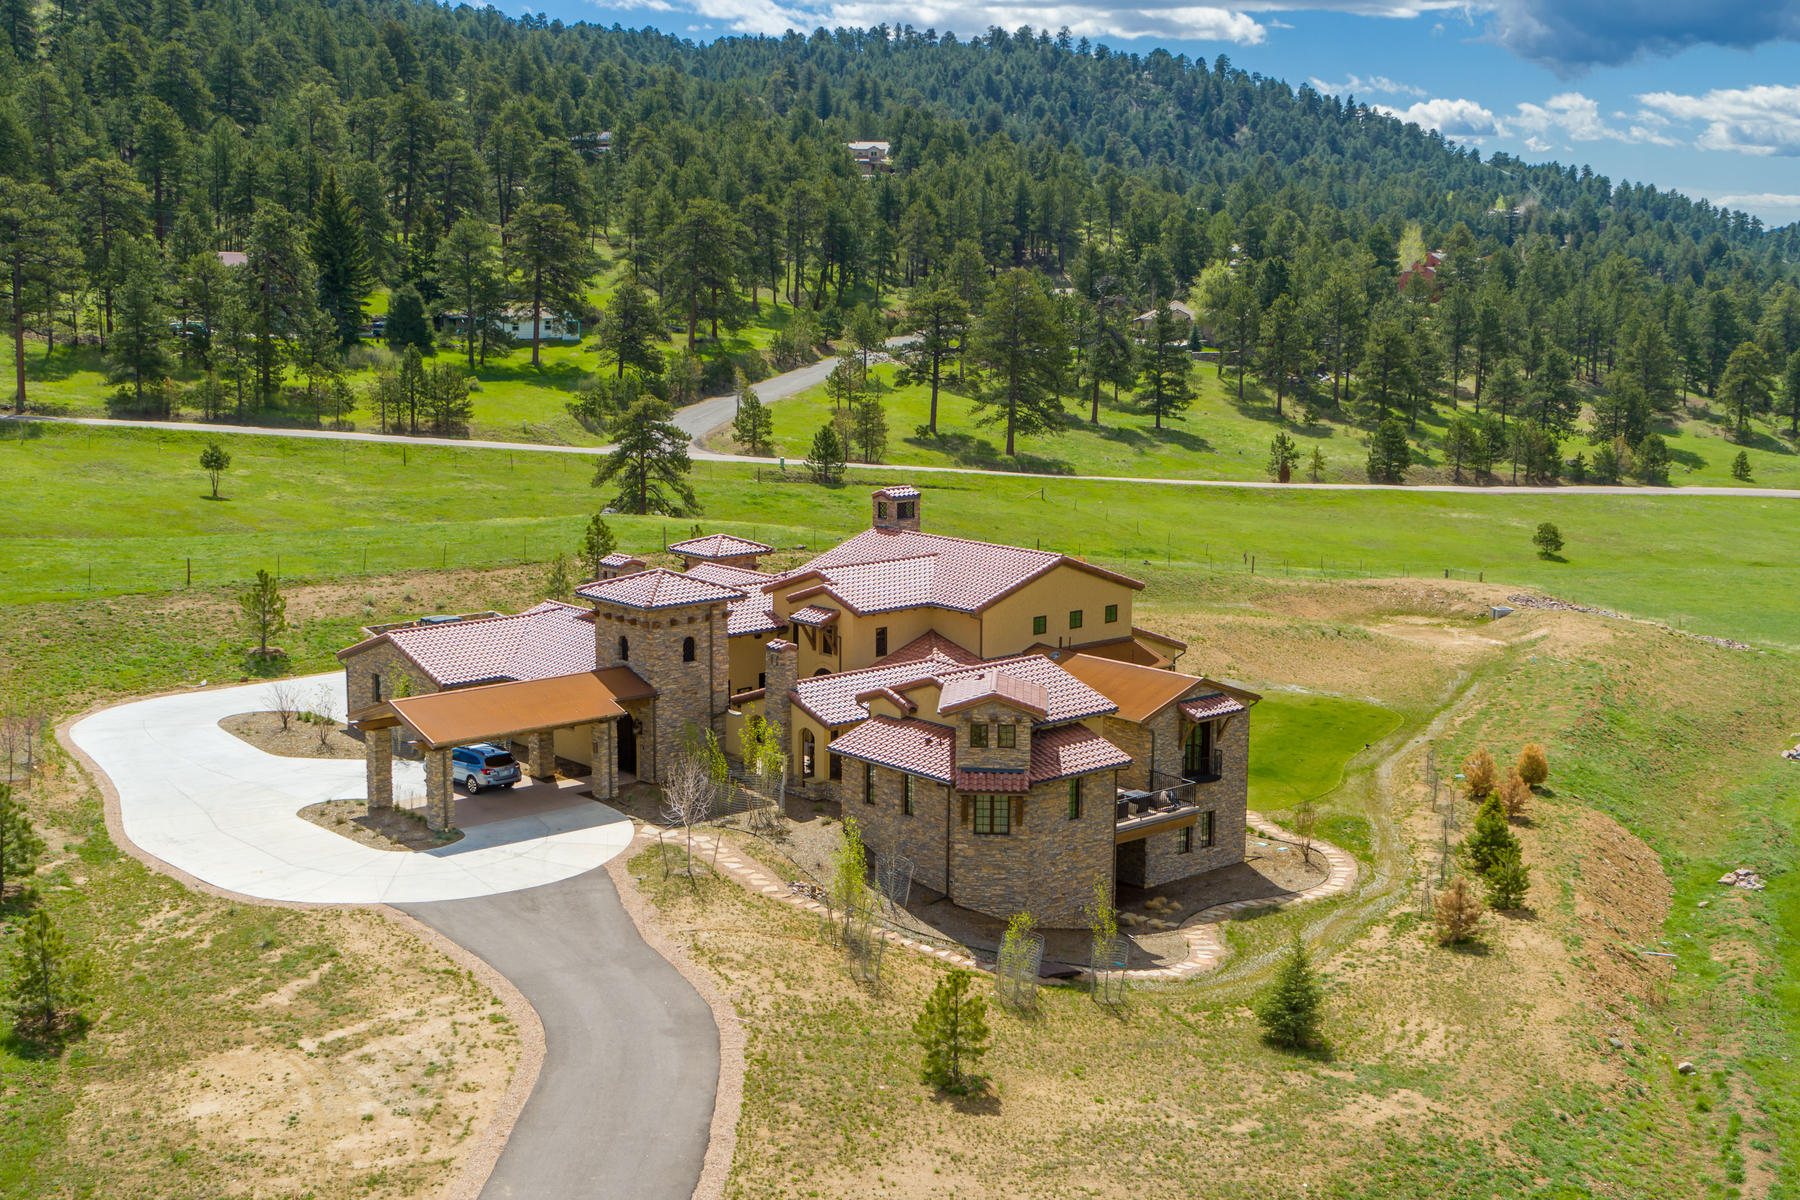 Single Family Homes for Sale at This 5-acre property is an experience that is unparalleled throughout the mounta 484 Spring Ranch Dr Golden, Colorado 80401 United States